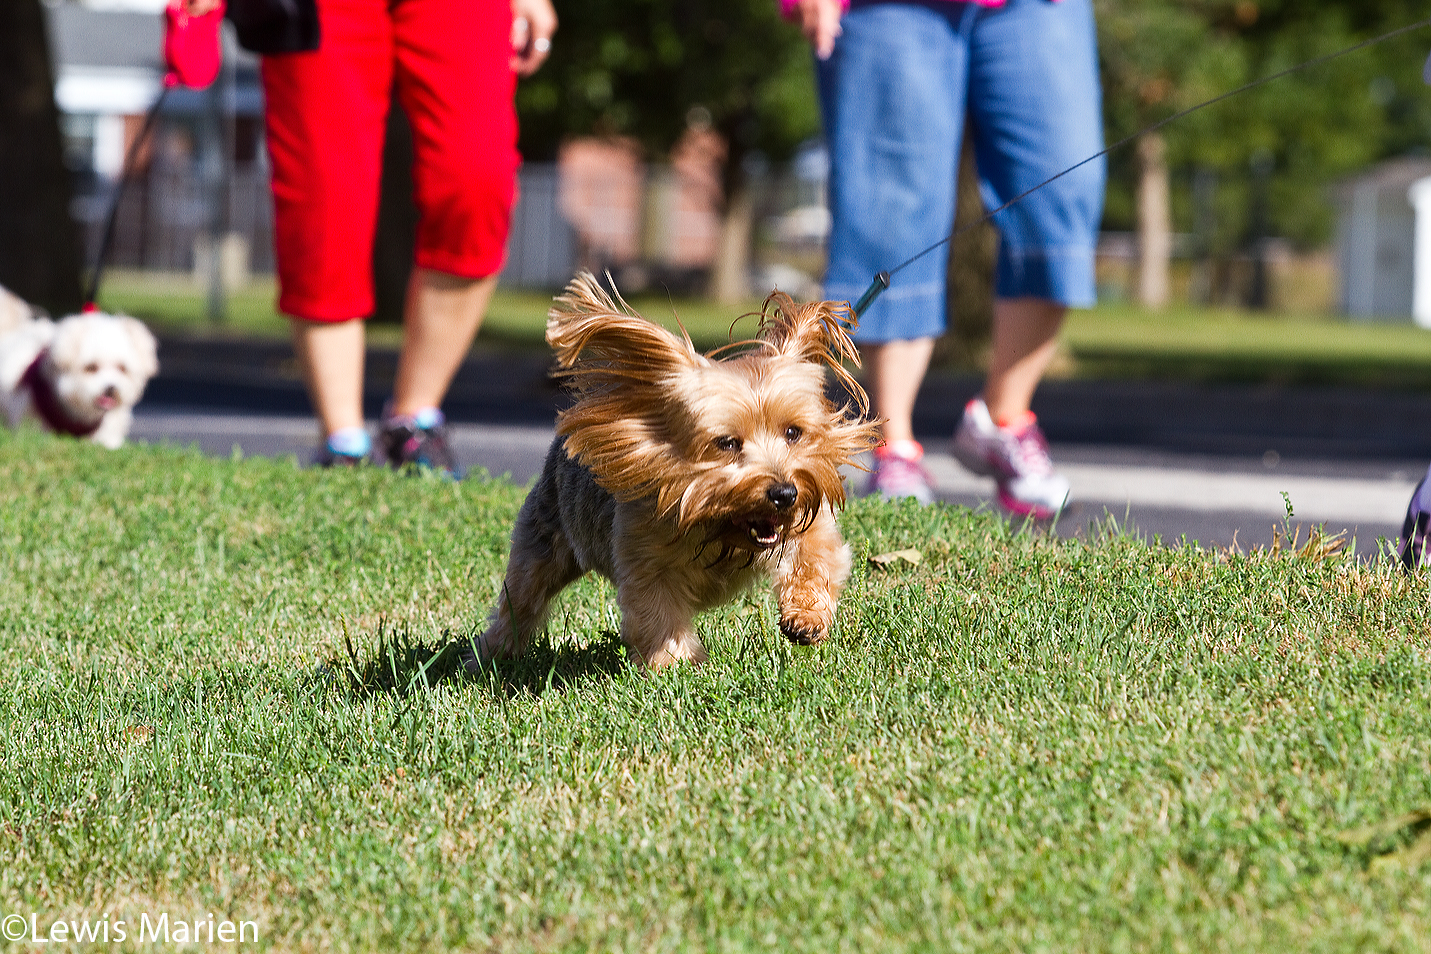 Max, a 7-year-old yorkie, frolics through the grass during the 23rd annual Doggie Jog on Sept. 19 at the Prairieland Animal Welfare Center in Galesburg, Ill.